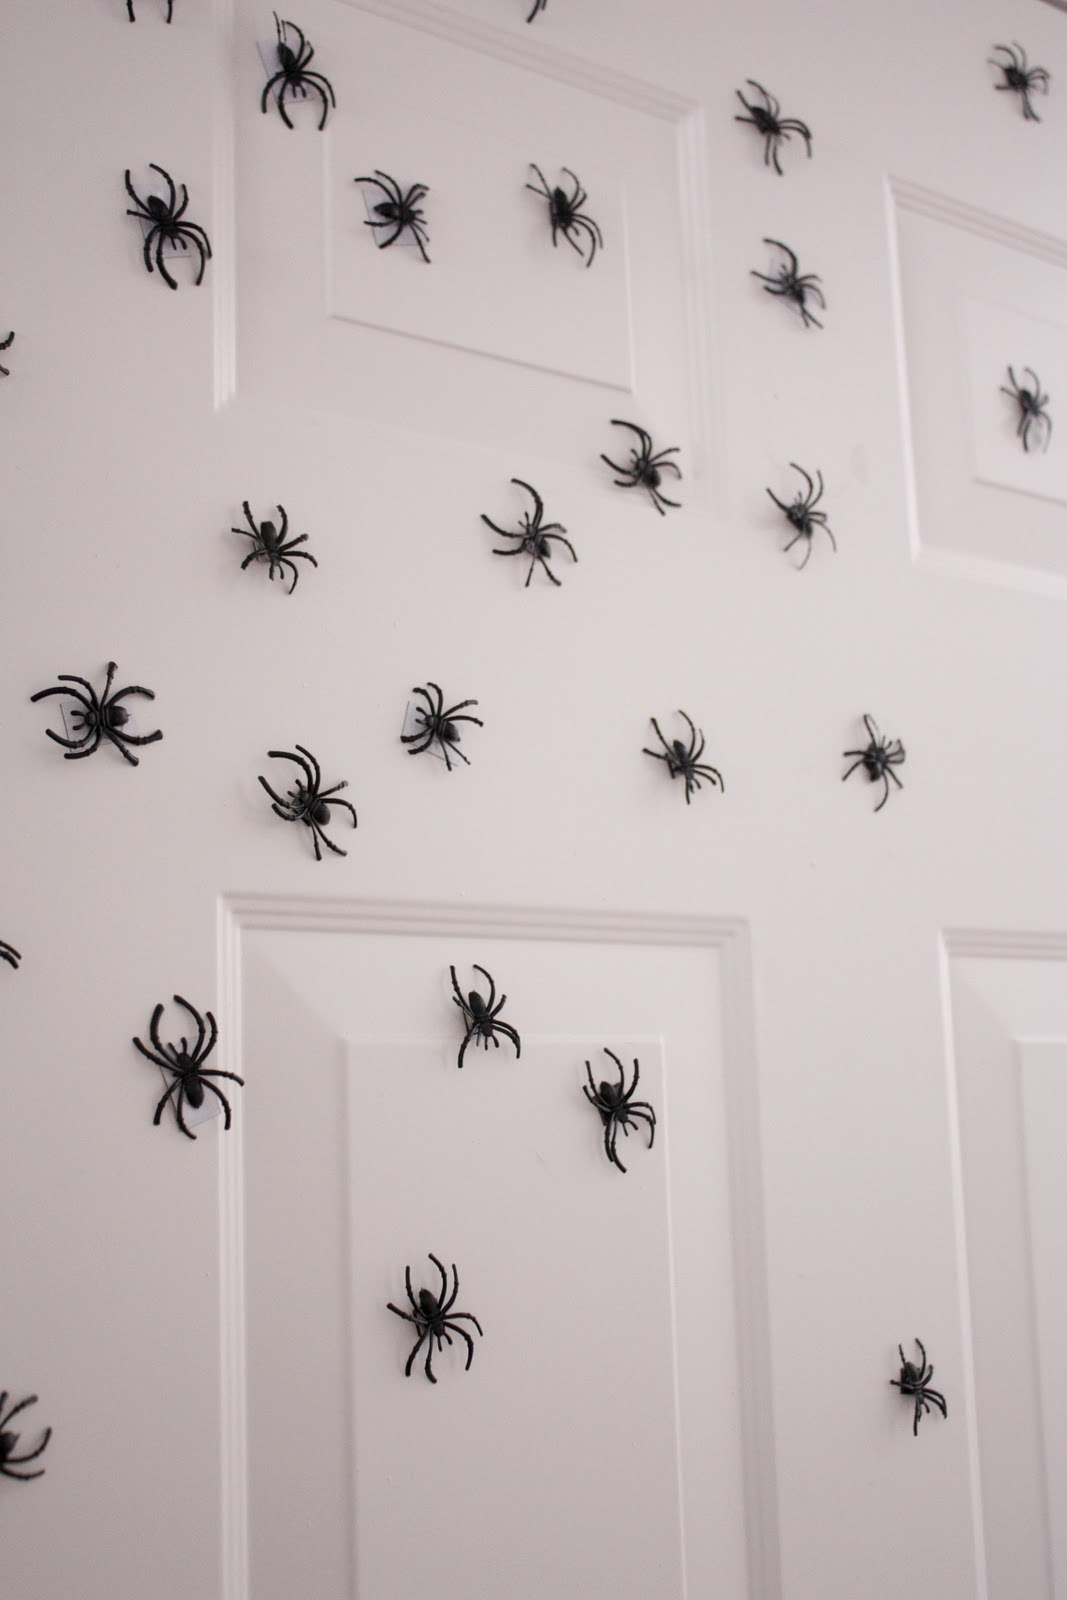 halloween magnetic spiders - Halloween Spiders